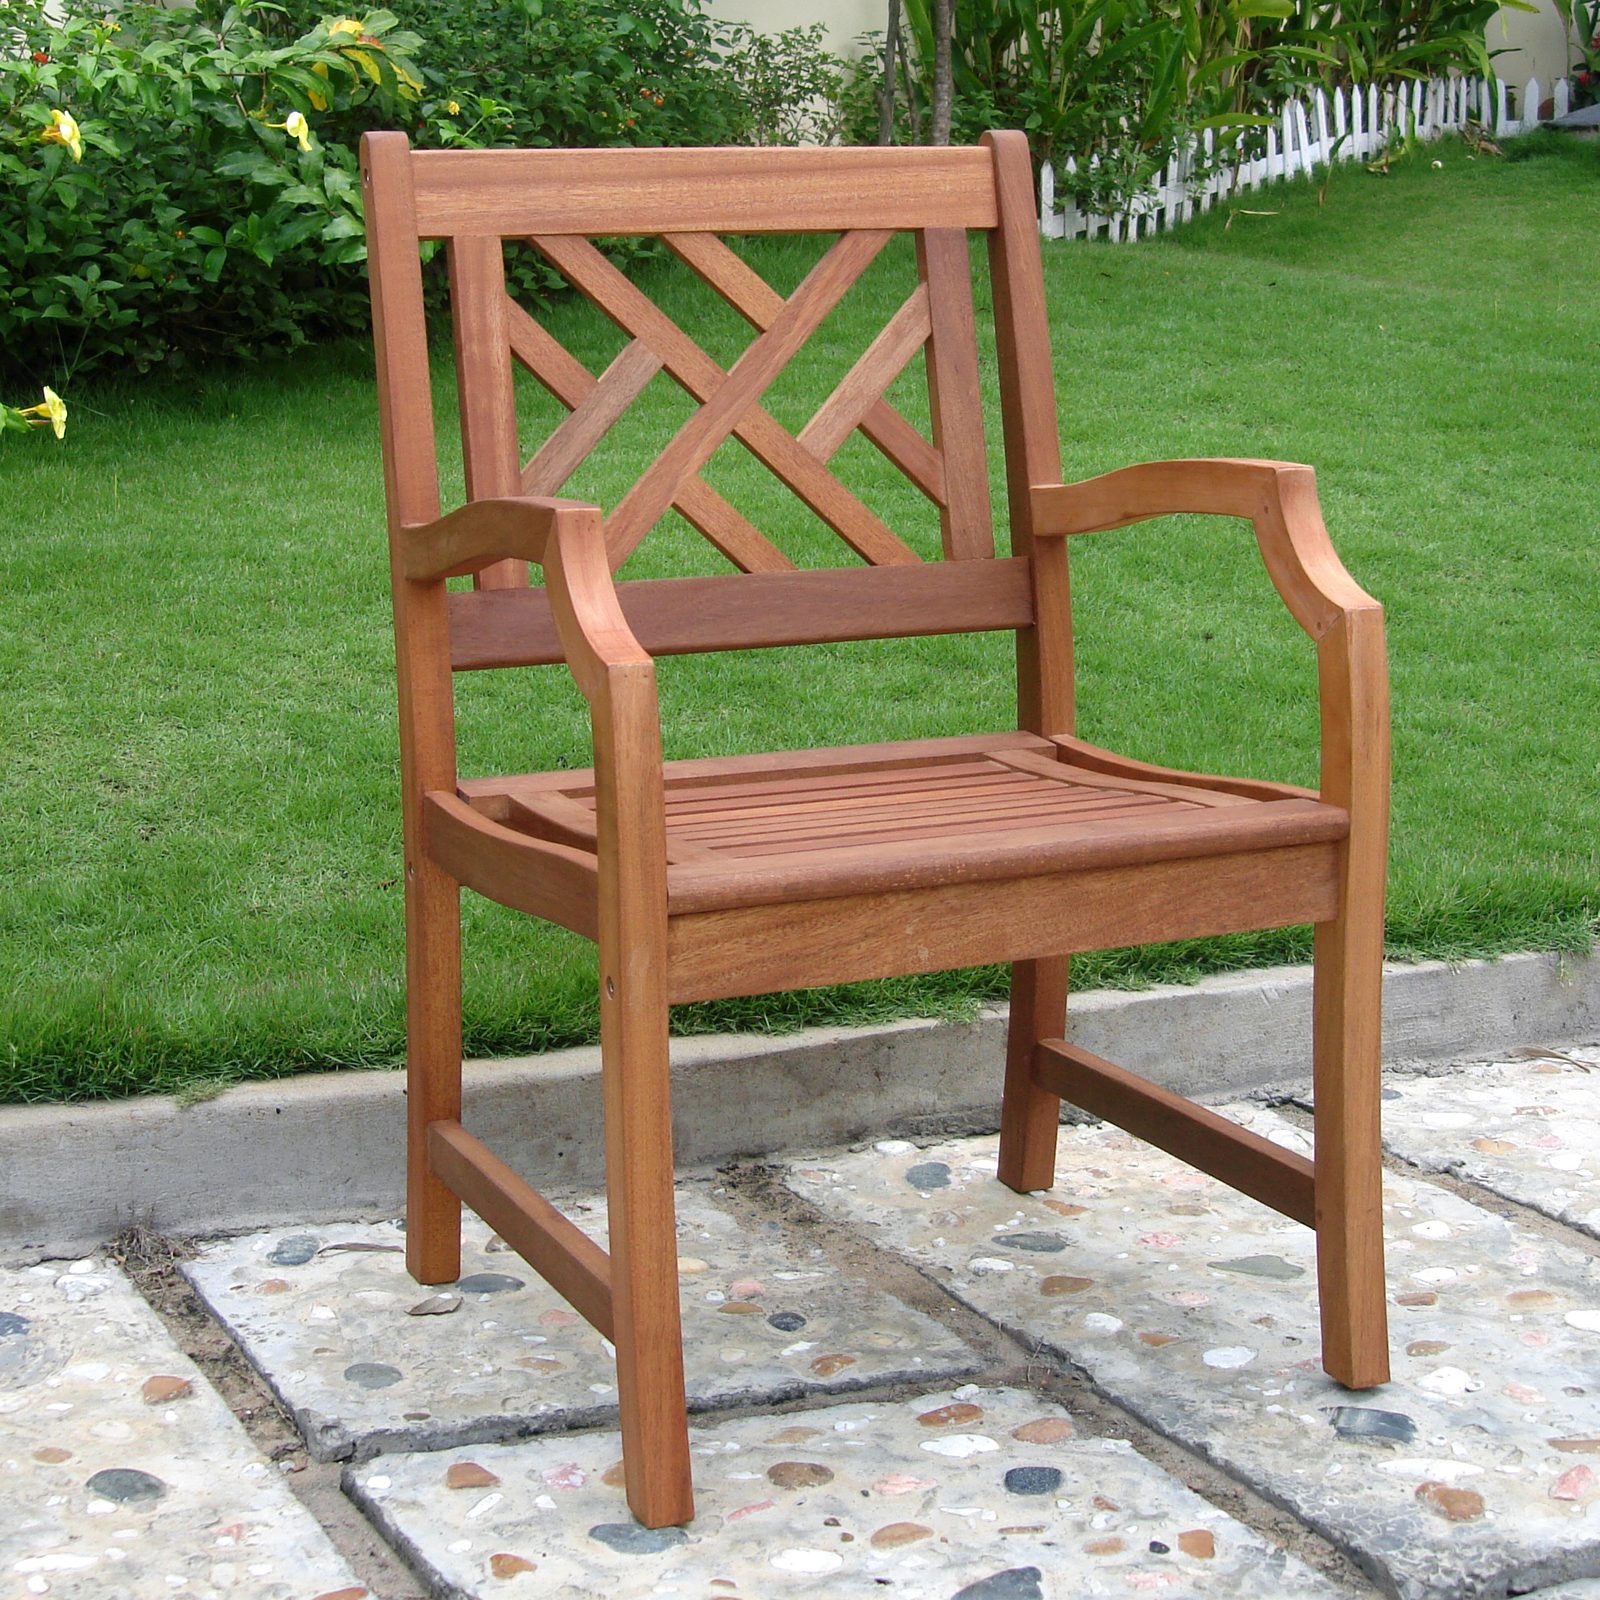 Ordinaire VIFAH Outdoor Wood Arm Chair, Natural Wood Finish